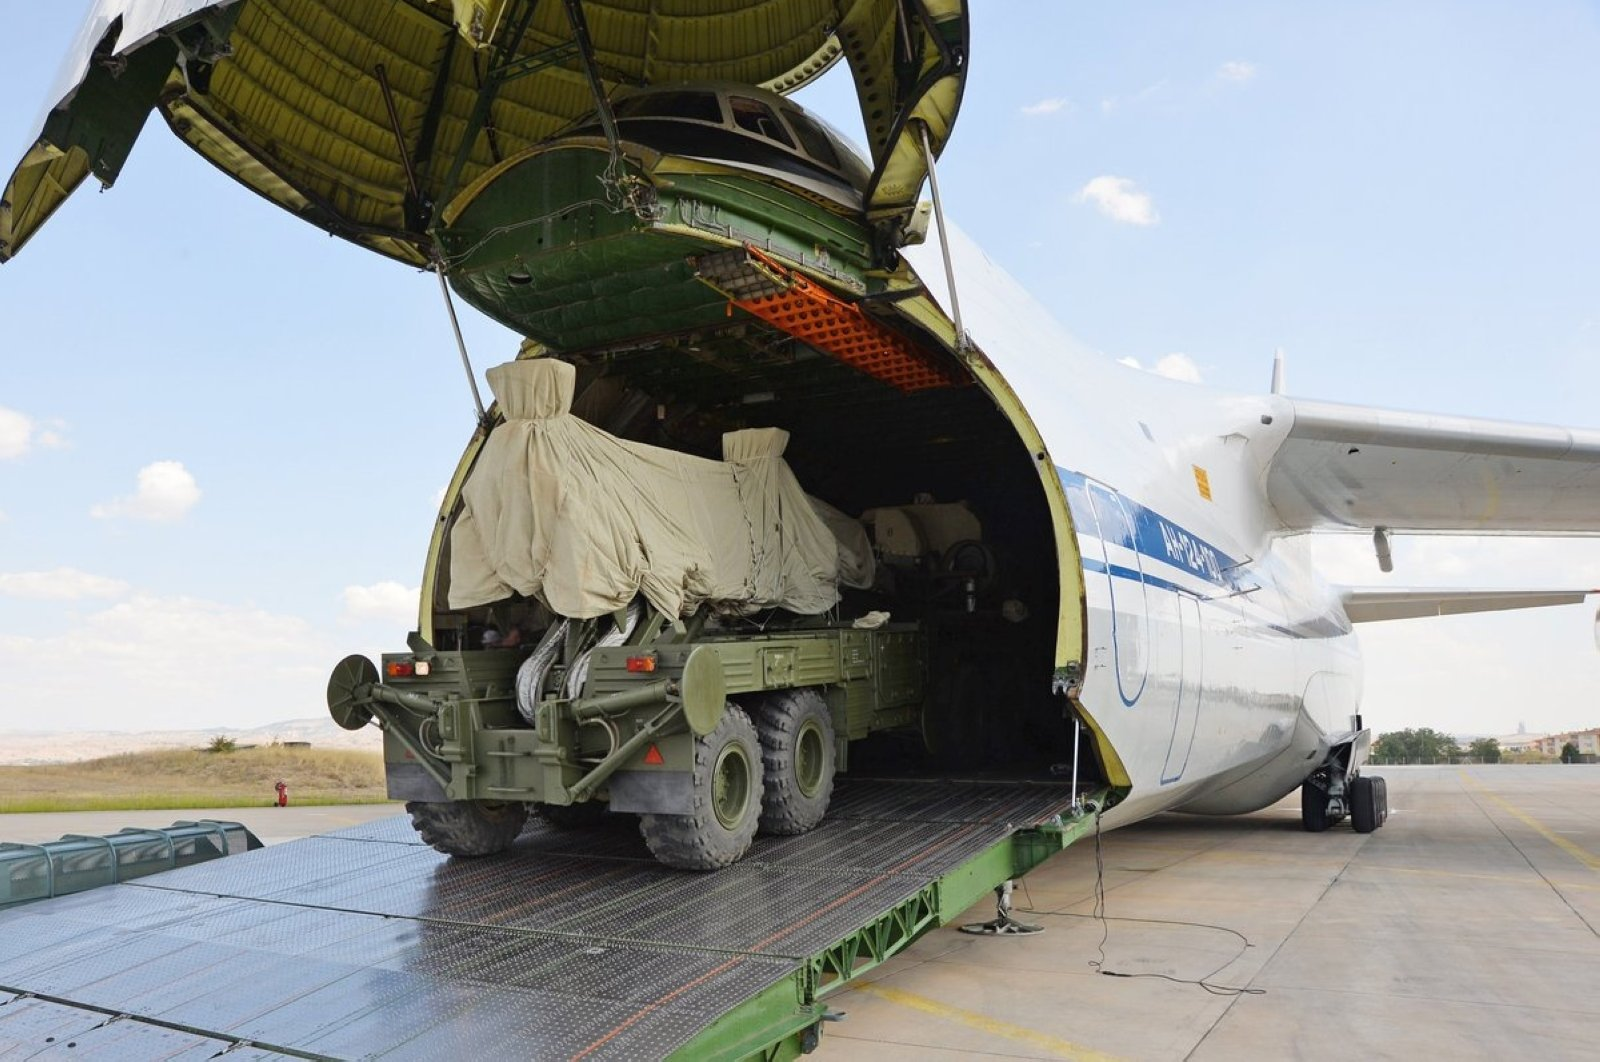 The delivery of the second battery for the Russian S-400 missile defense system arrives at Mürted Airfield Command near the capital Ankara, Turkey, Sept. 17, 2019 (AA Photo)